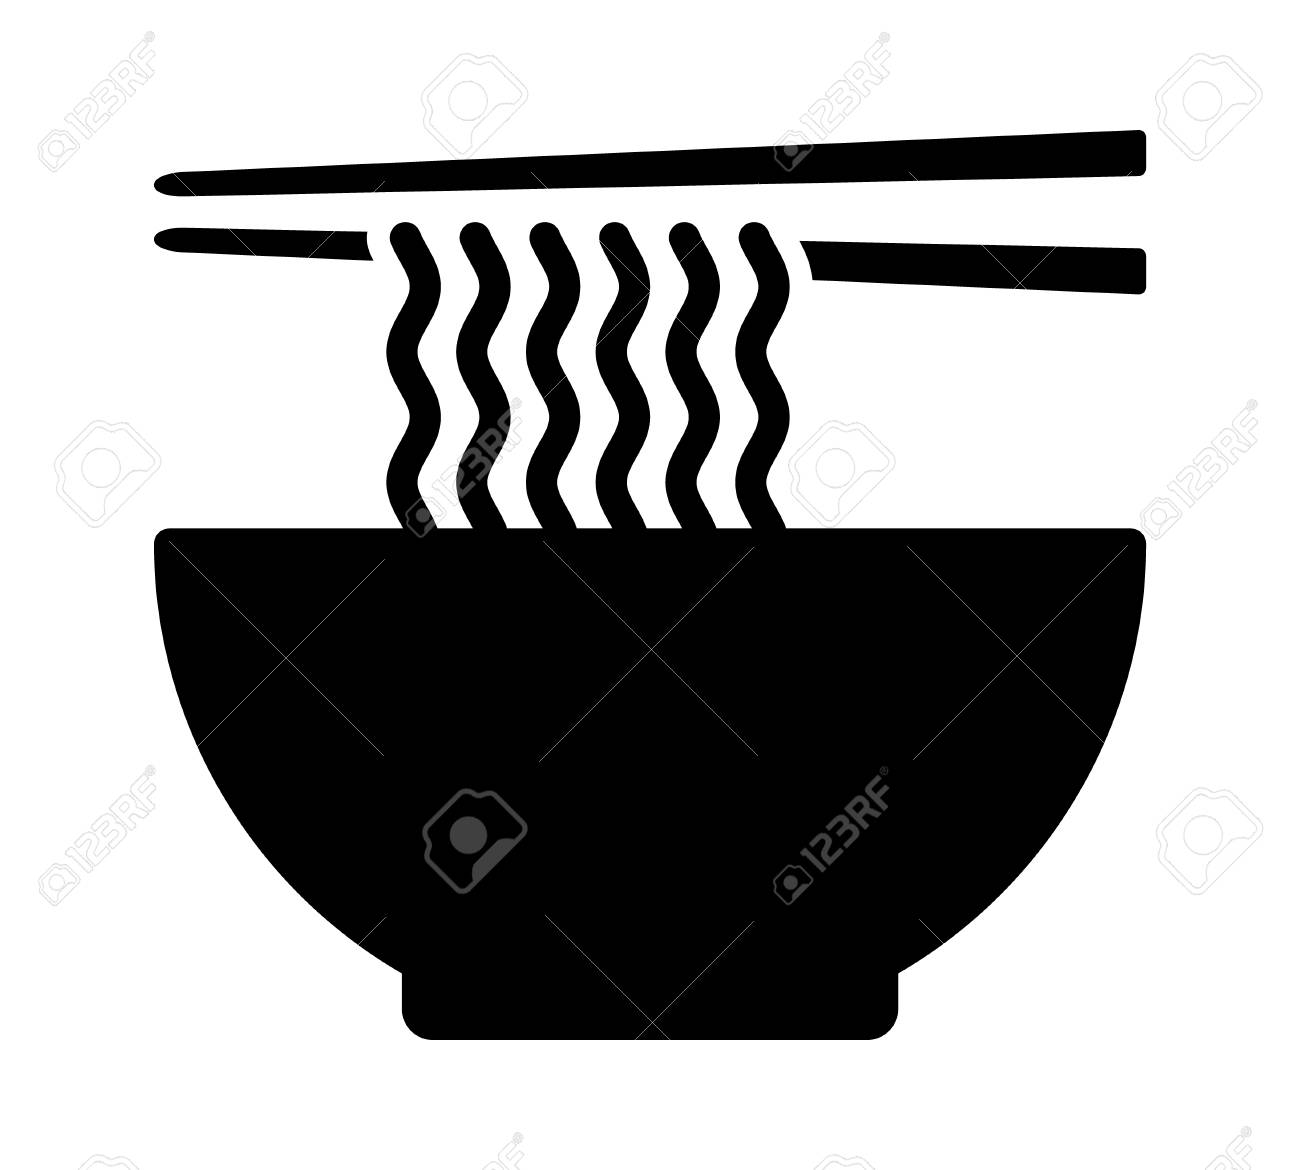 Ramen Noodle Soup Bowl With Chopsticks Flat Vector Icon For Food Royalty Free Cliparts Vectors And Stock Illustration Image 114860857